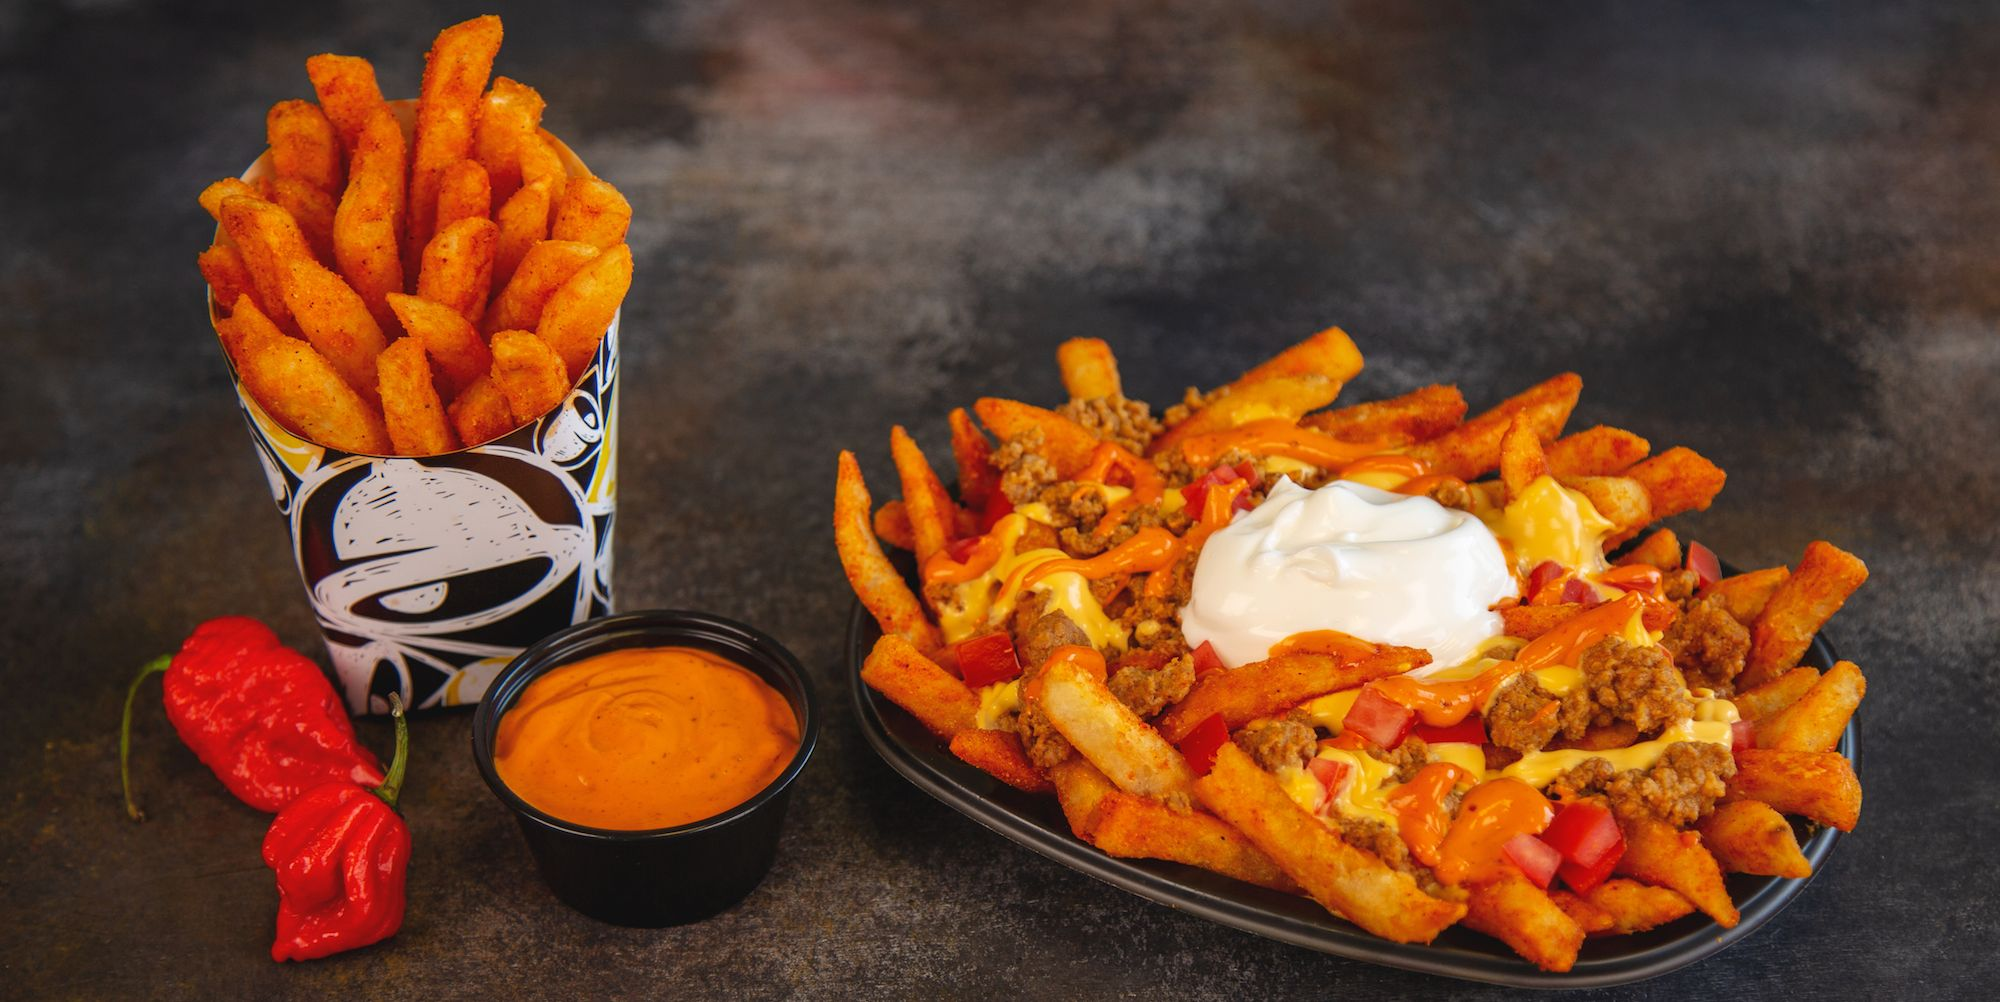 Taco Bell's New Nacho Fries Just Got the Biggest Upgrade